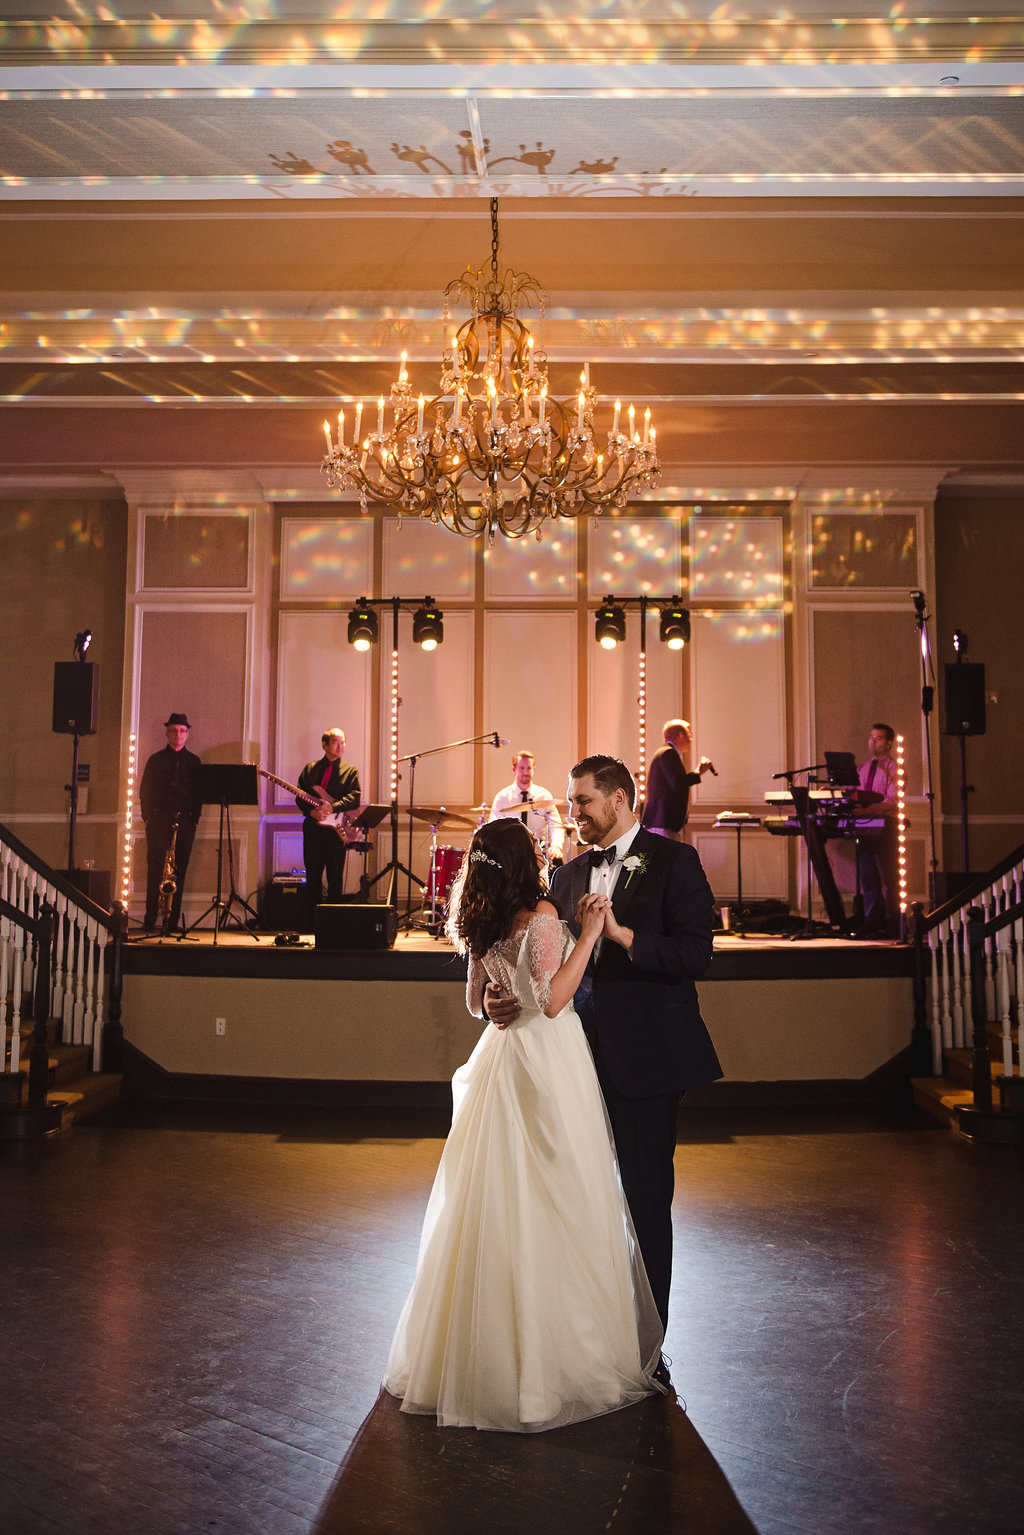 Hotel Ballroom Wedding Reception First Dance, with Gobo Ceiling Lights and Tampa Bay Wedding Band Phase 5 | St Pete Wedding Planner Parties A La Carte | Historic Venue The Don CeSar | Photographer Marc Edwards Photographs